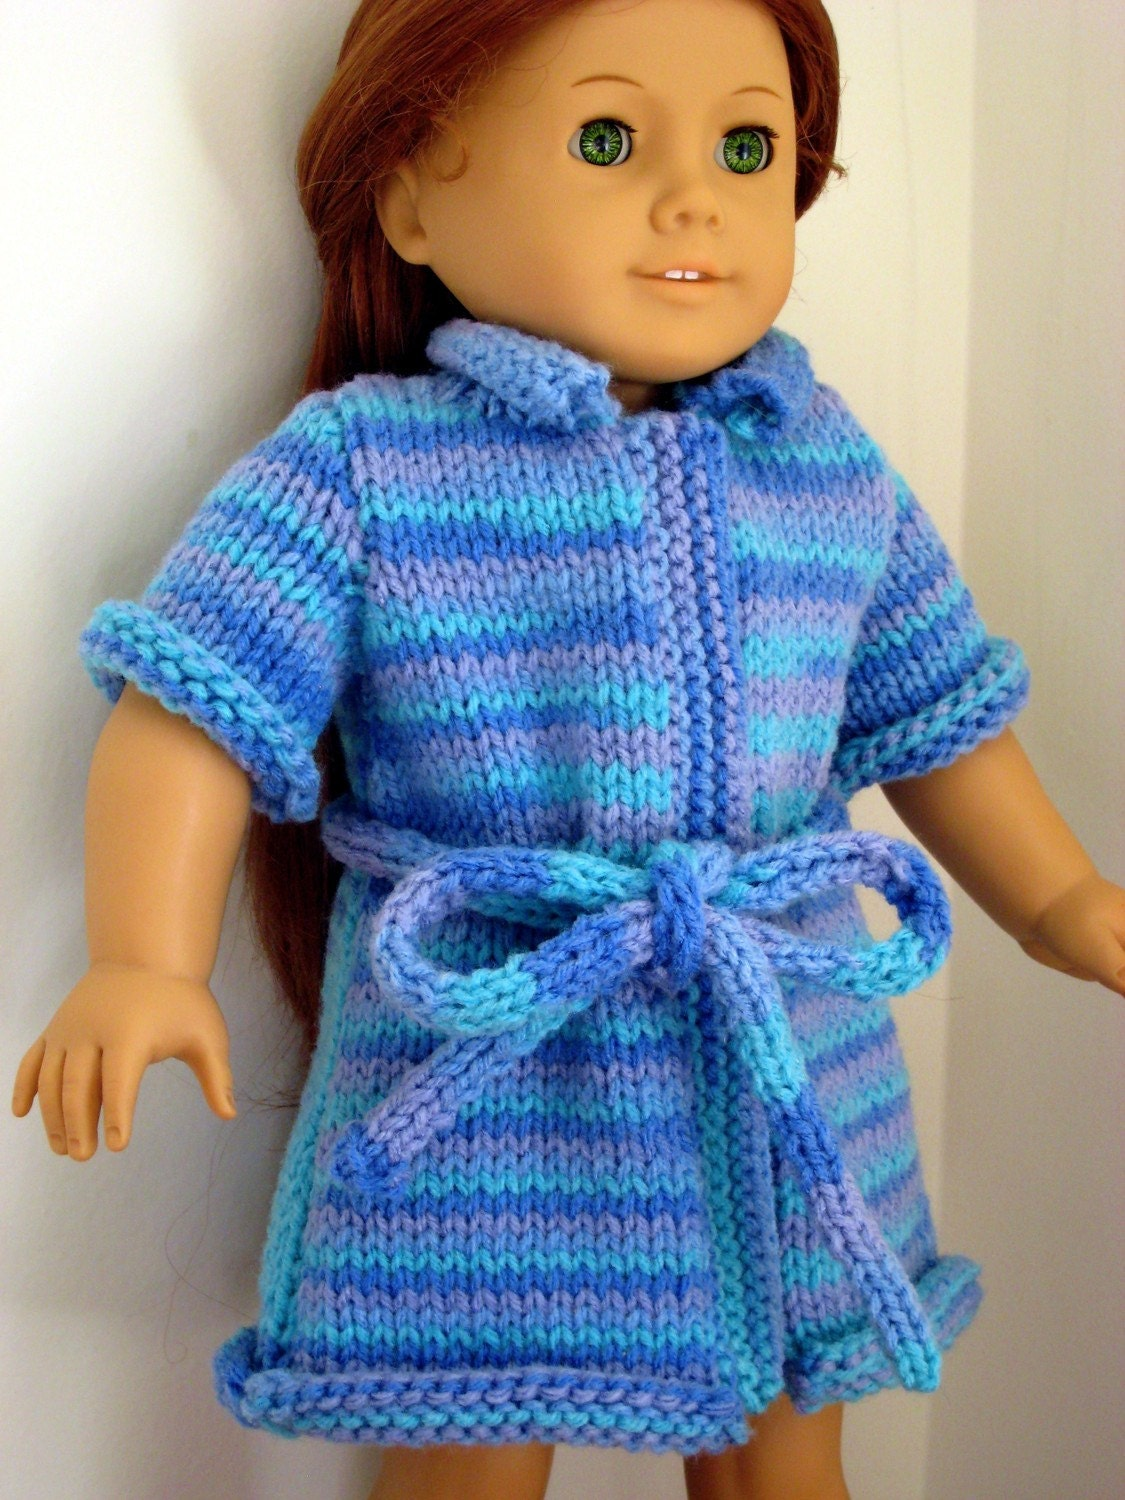 Knitting Patterns For 24 Inch Dolls : PDF KNITTING PATTERN Bath Robe for American Girl Doll and 18